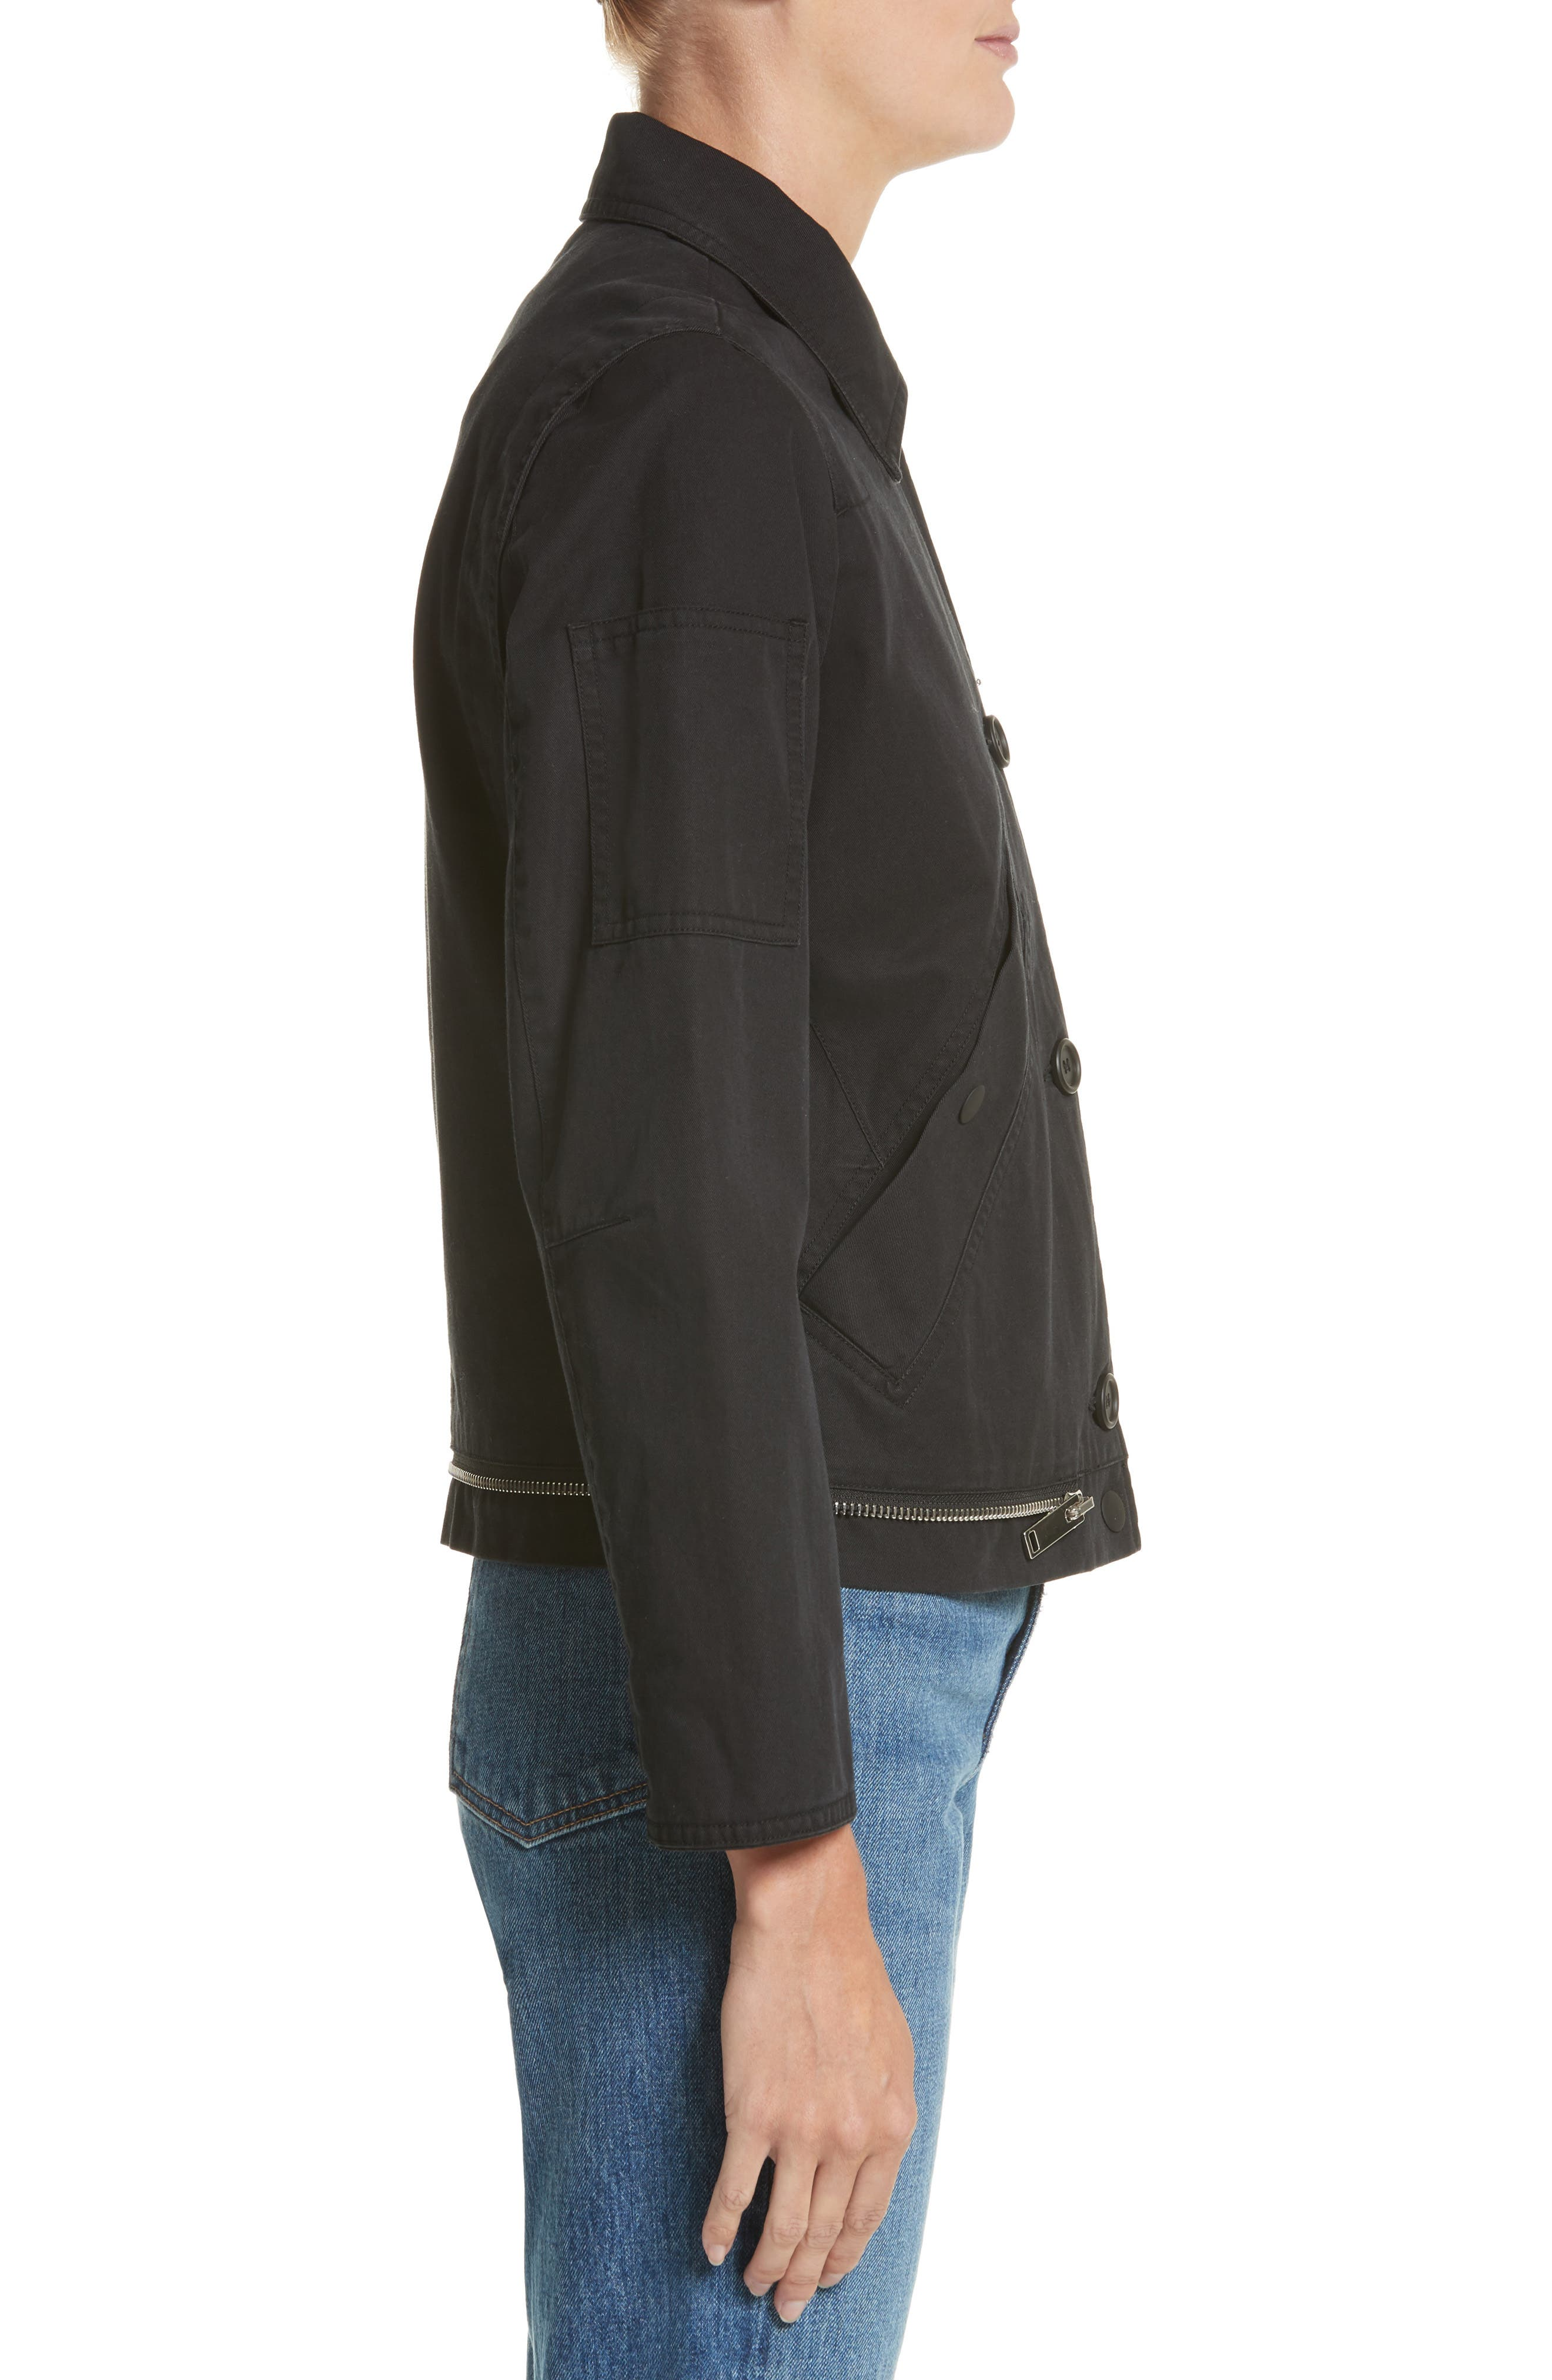 PSWL Washed Cotton Military Jacket,                             Alternate thumbnail 3, color,                             Black